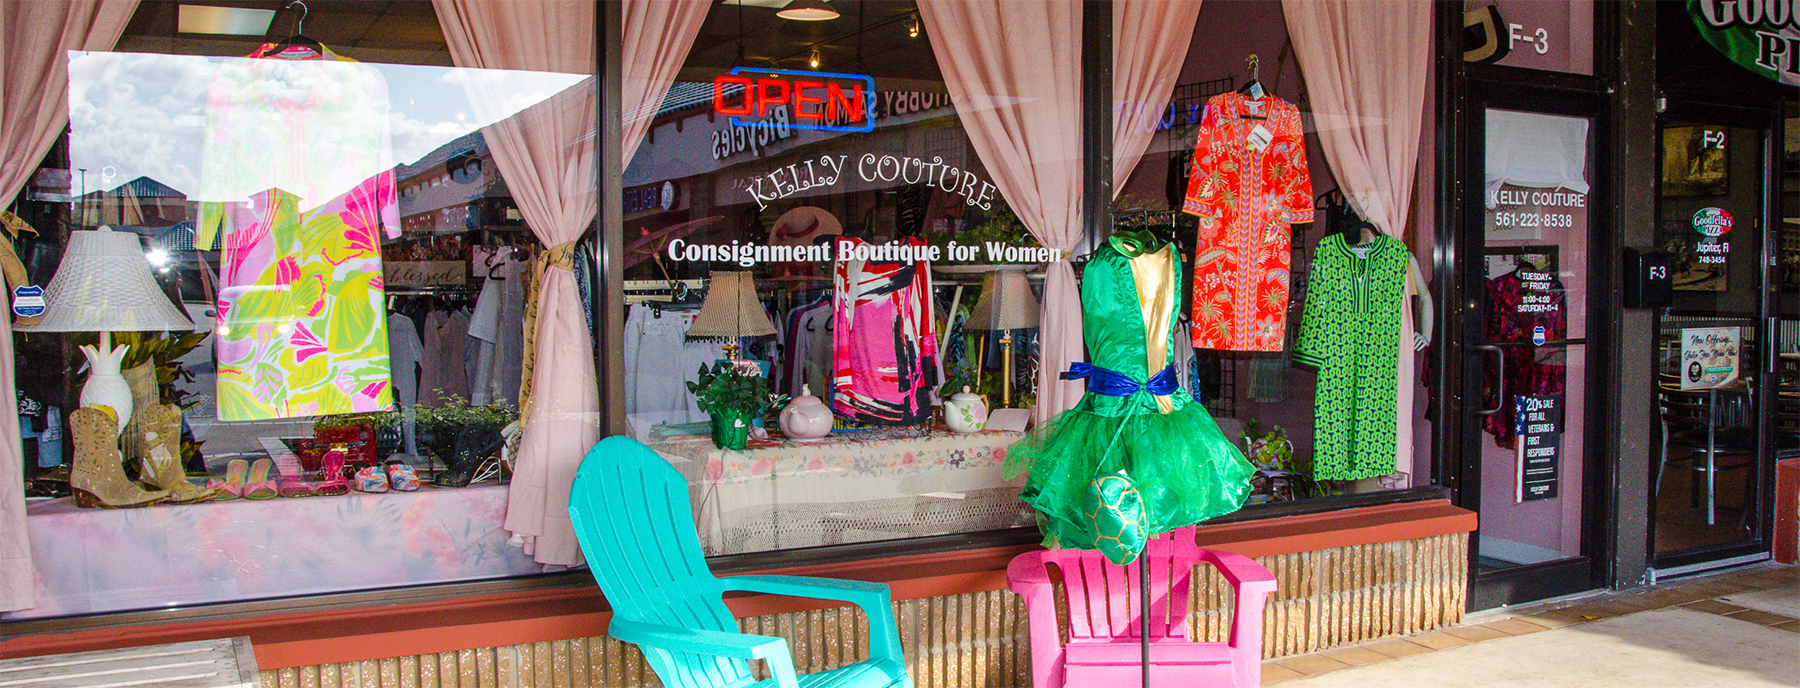 b5a65f4630b Kelly Couture Consignment is a women s consignment shop located in the  Jupiter Square Shopping Center in Jupiter